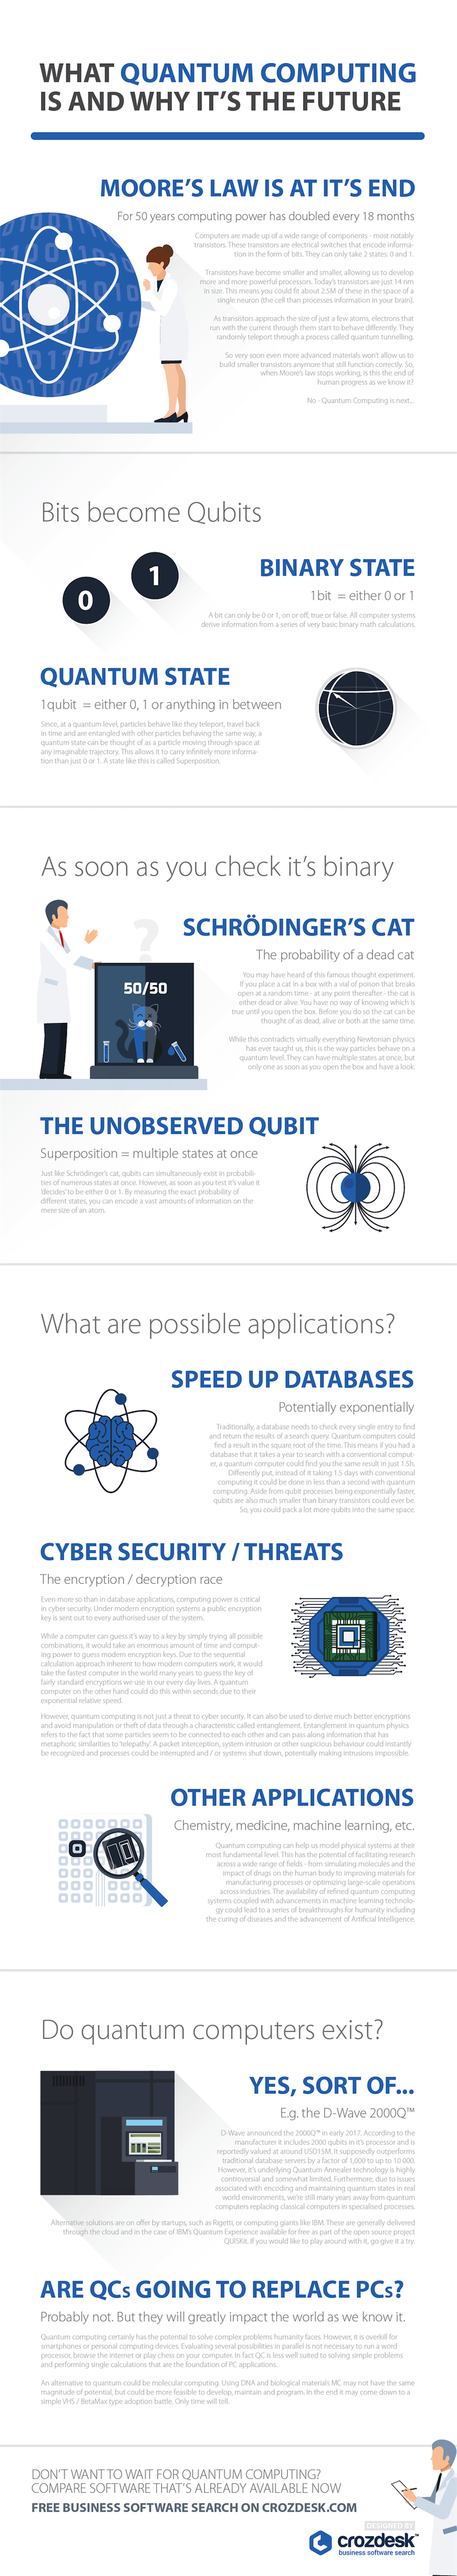 What is Quantum Computing and Why it's the Future - Infographic